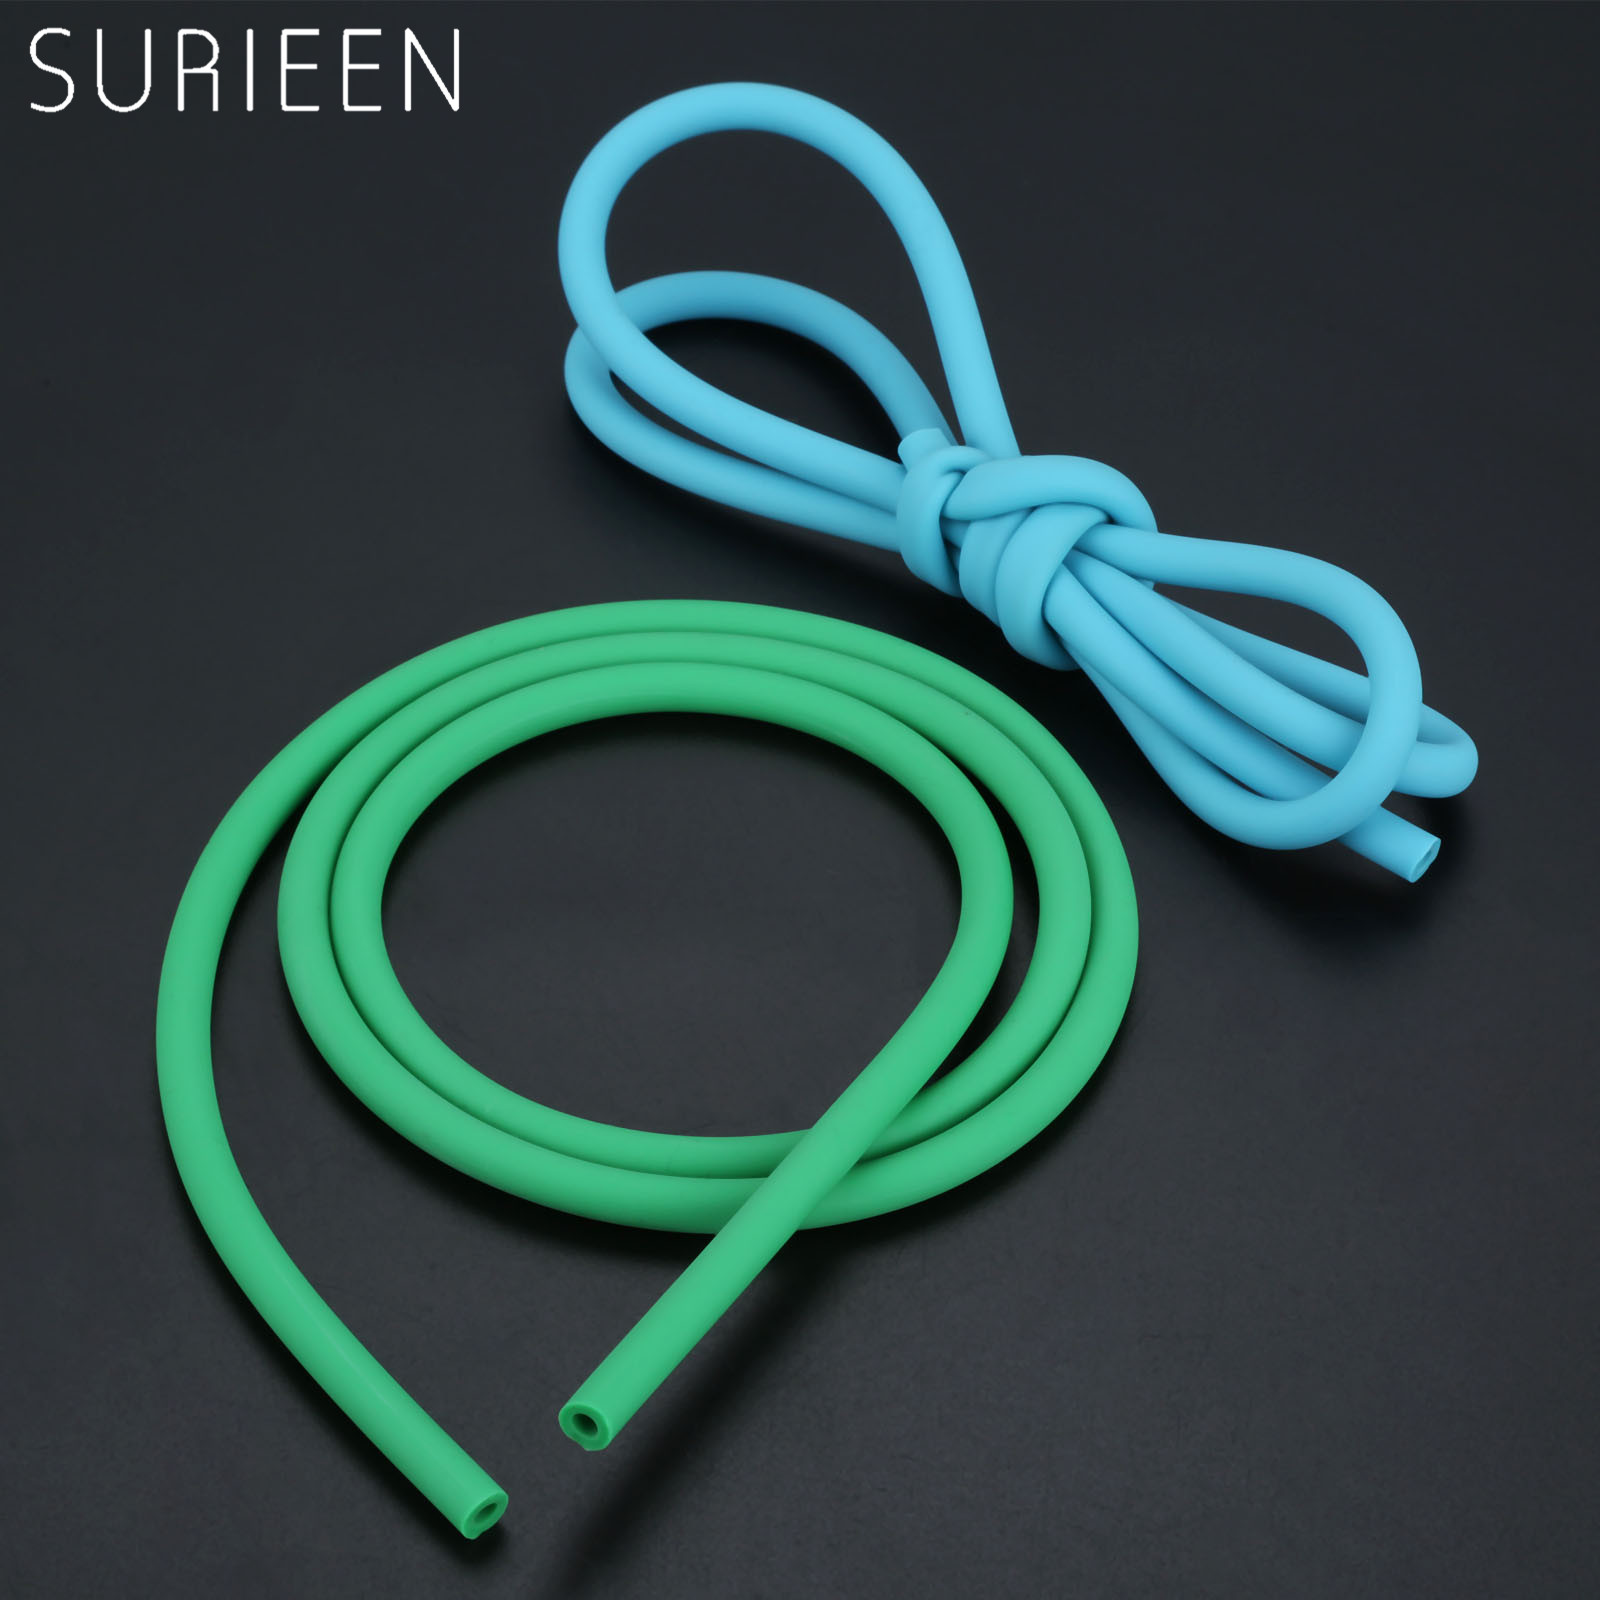 1pc 4070 4mmX7mm Slingshots Rubber Tube 1m Elastic Bungee Bow & Arrow Replacement Rubber Band For Hunting Catapults Sling Shots